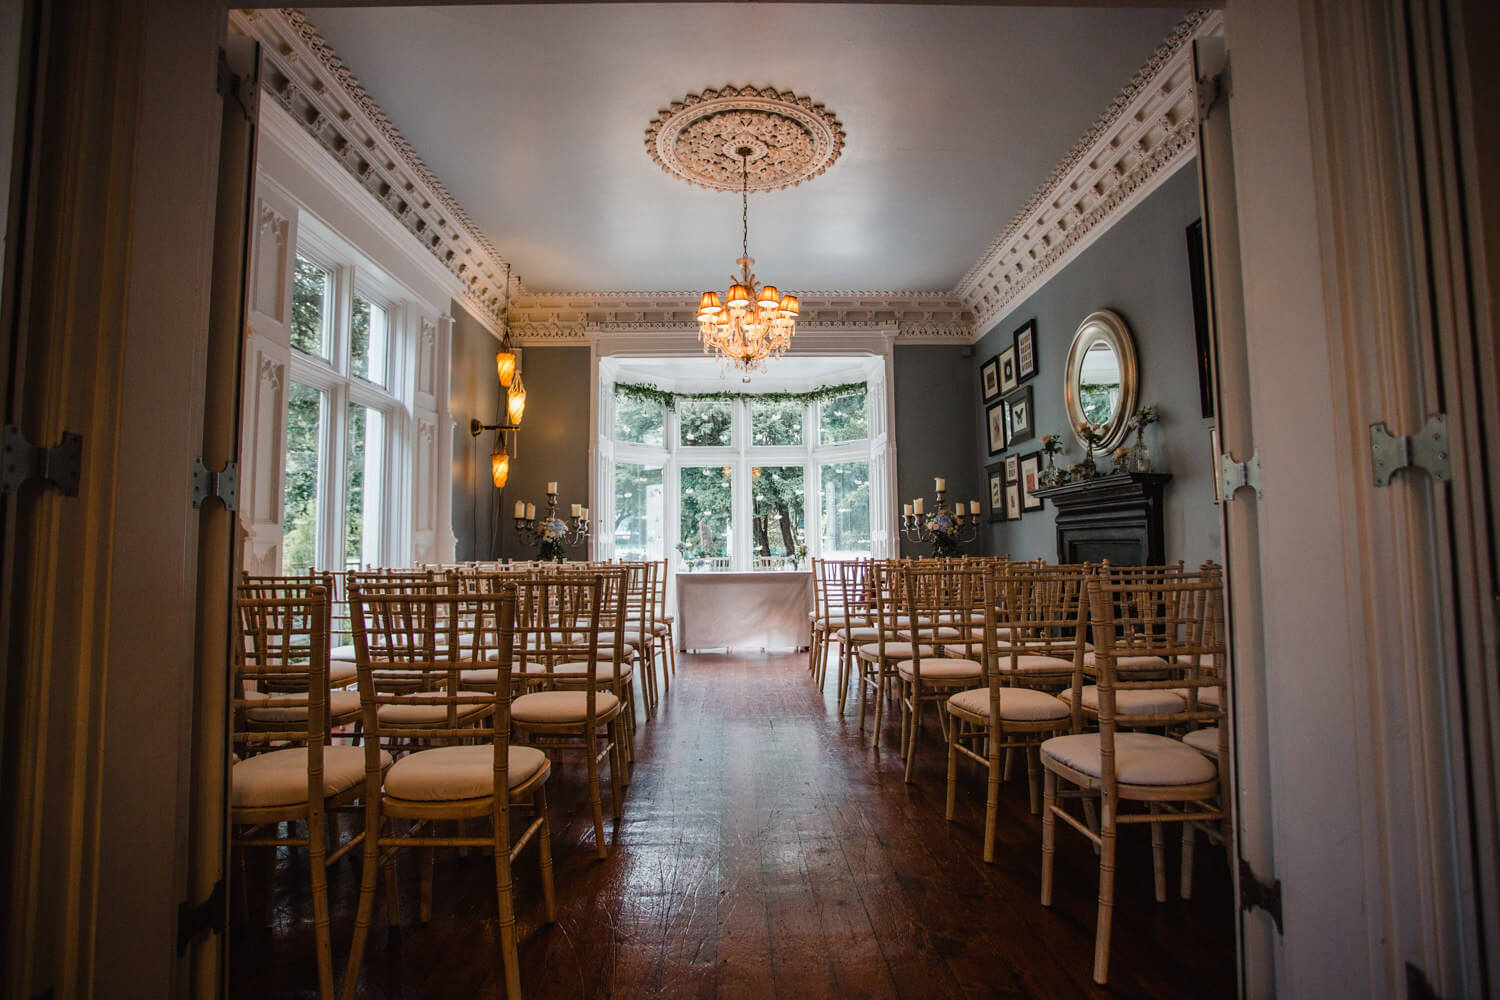 wide angle lens photograph of didsbury house hotel ceremony room